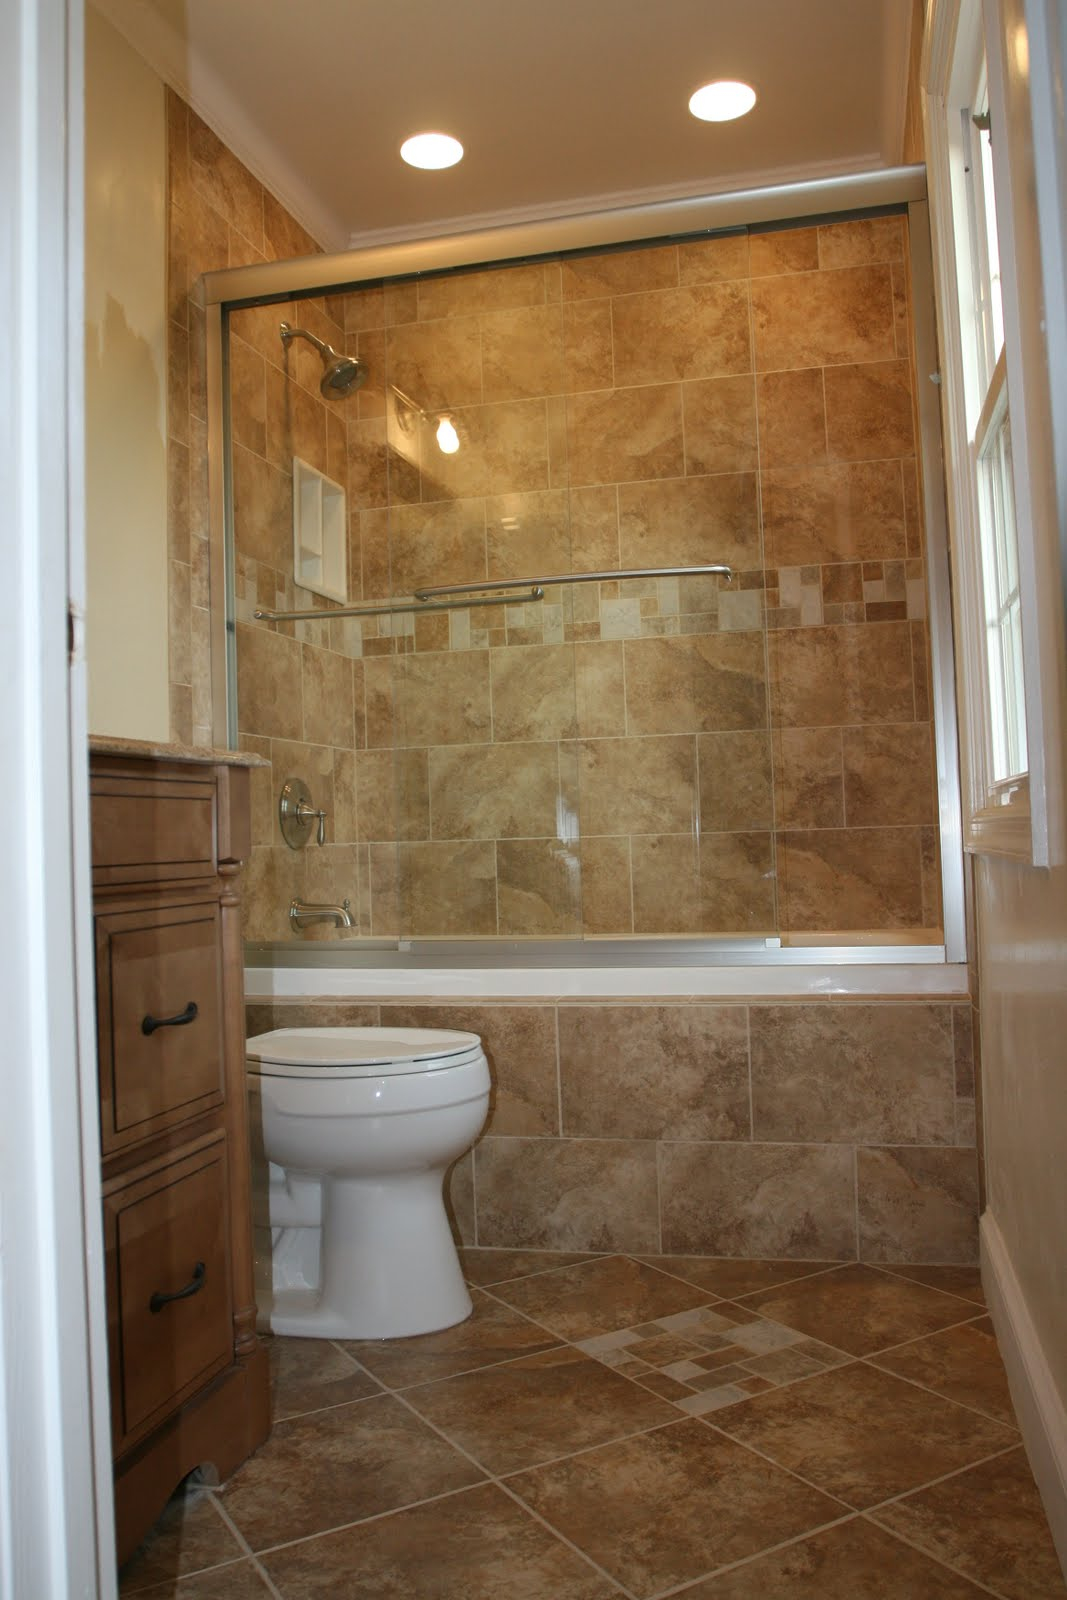 remodeling tips on Remodeling Design Ideas Tile Shower Niches: Bathroom Remodeling ...